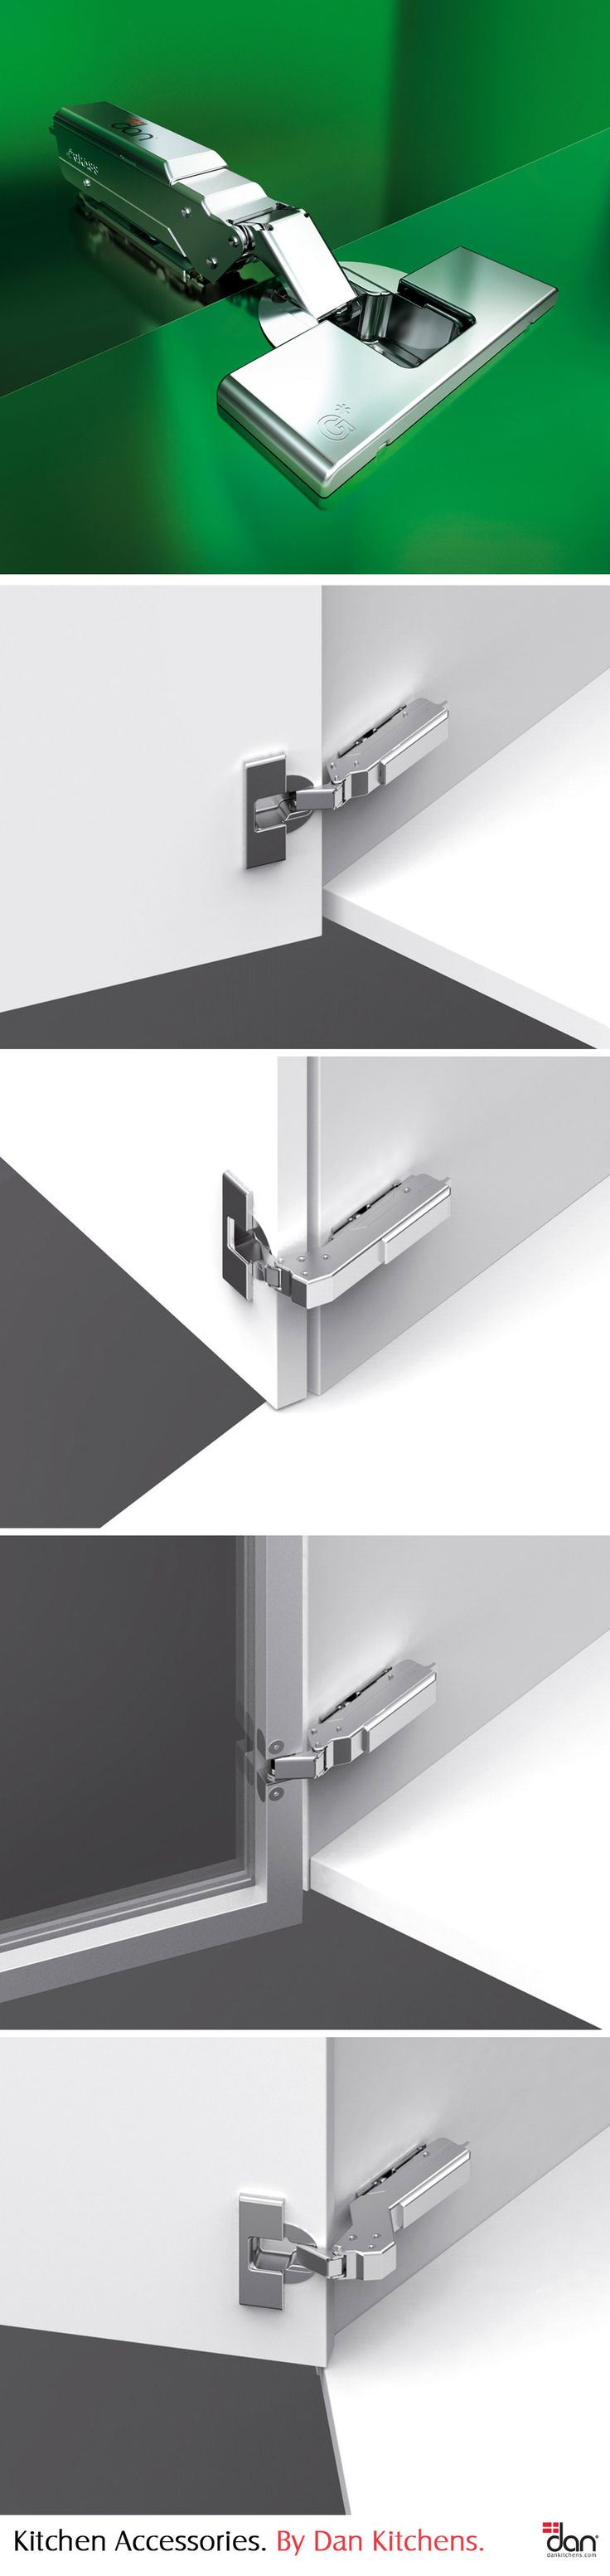 Tiomos Hinge System by Grass: Austrian made, kitchen hardware from Grass represents the premium end of the market. The Toimos is their latest system incorporating fine adjustment, integrated soft-close and a sleek look.